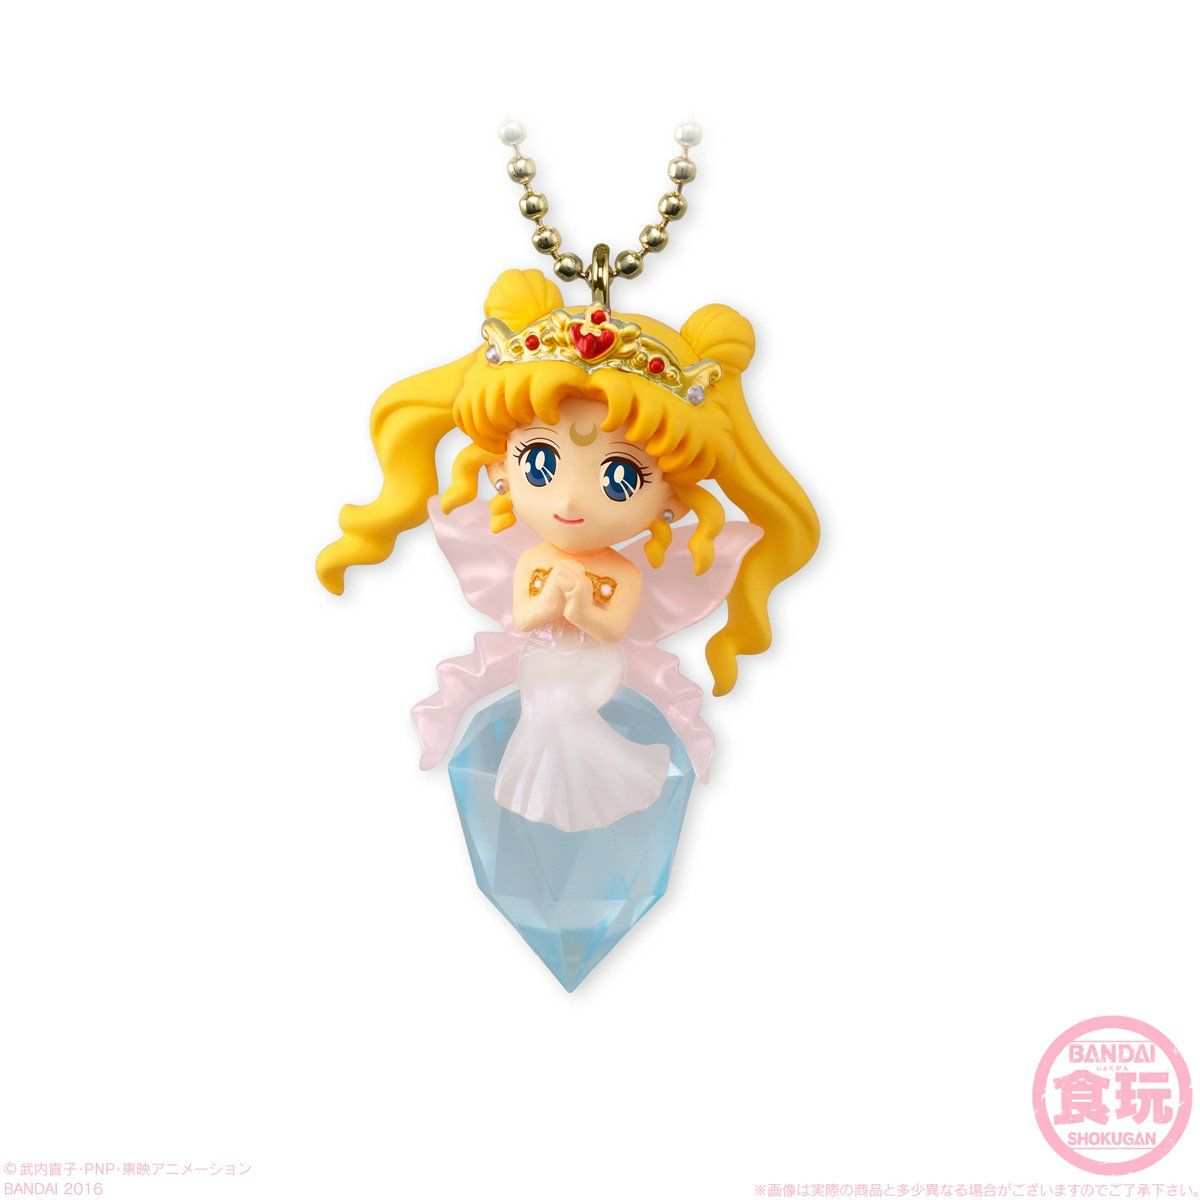 Neo Queen Serenity Funko: Sailor Moon Twinkle Dolly Set 4 Candy ToysSAILOR MOON